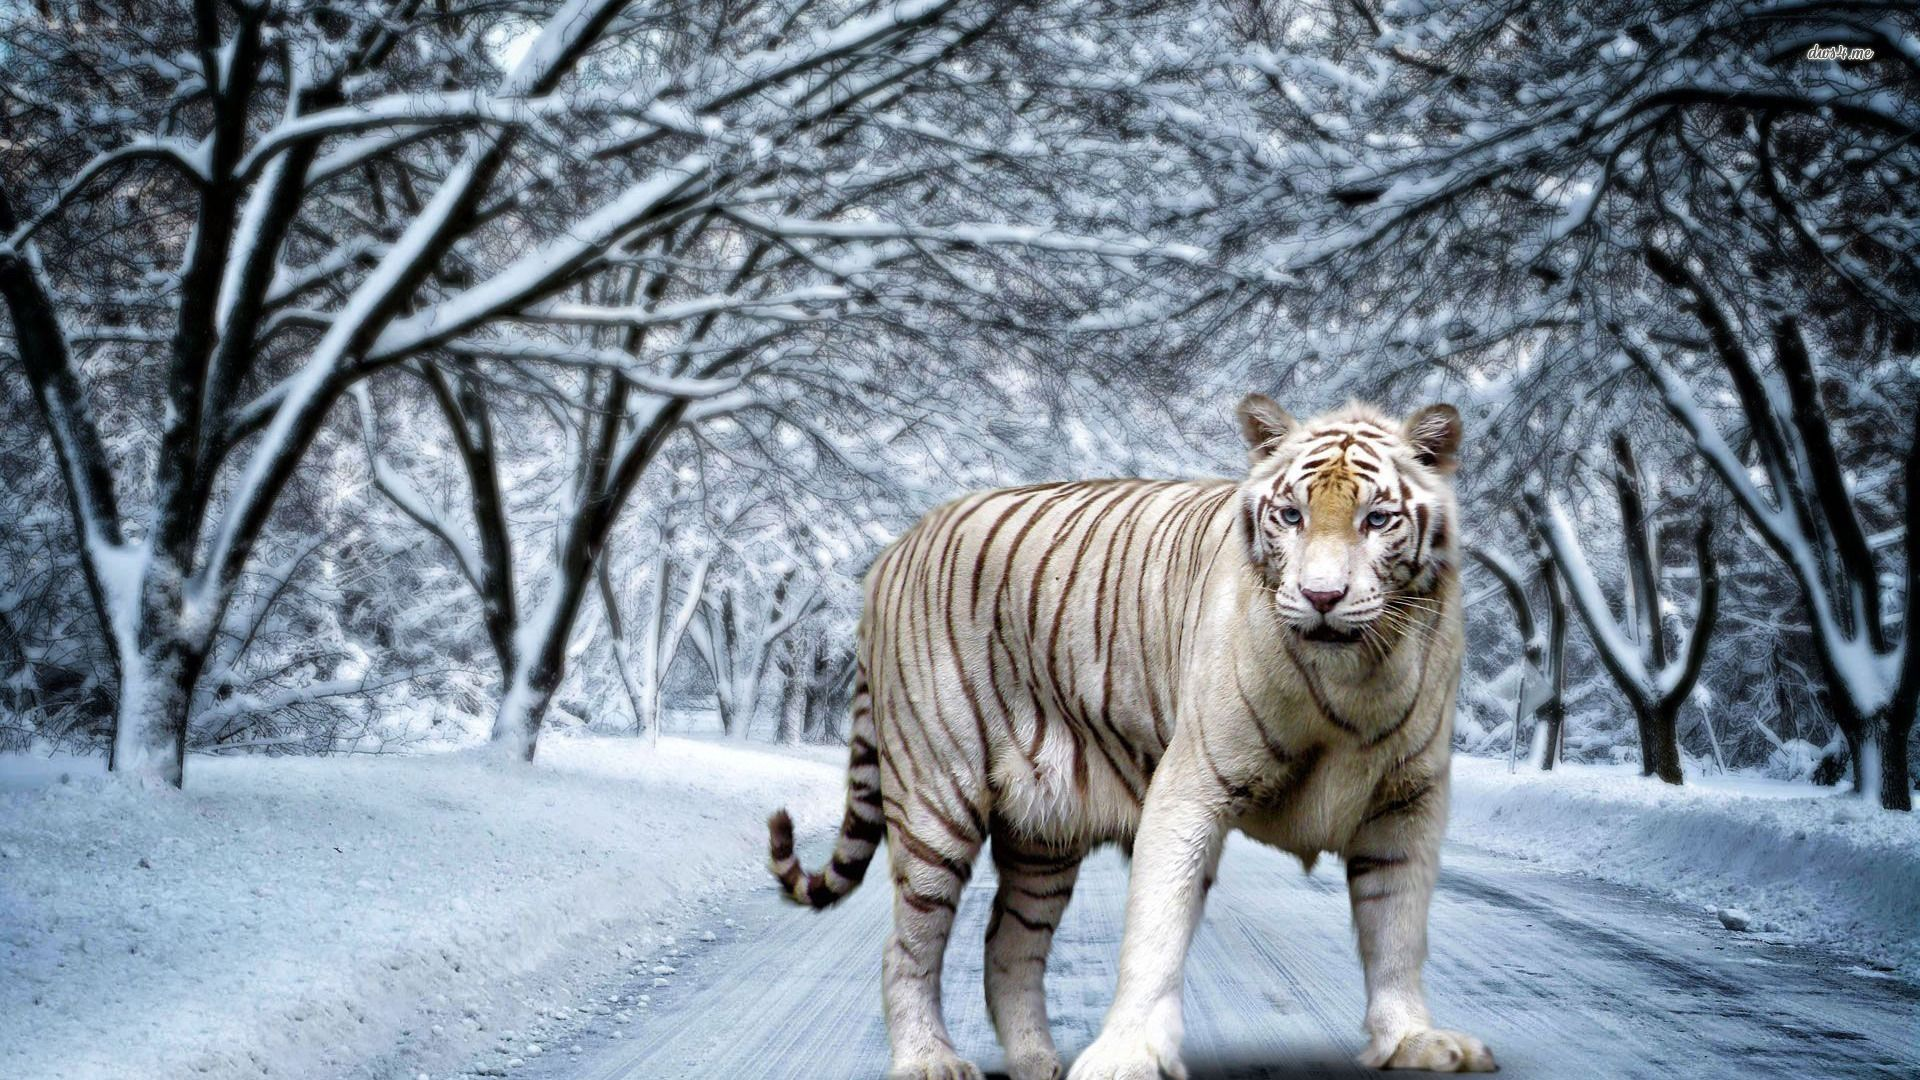 White Tiger posing on a snowy background, Wallpaper